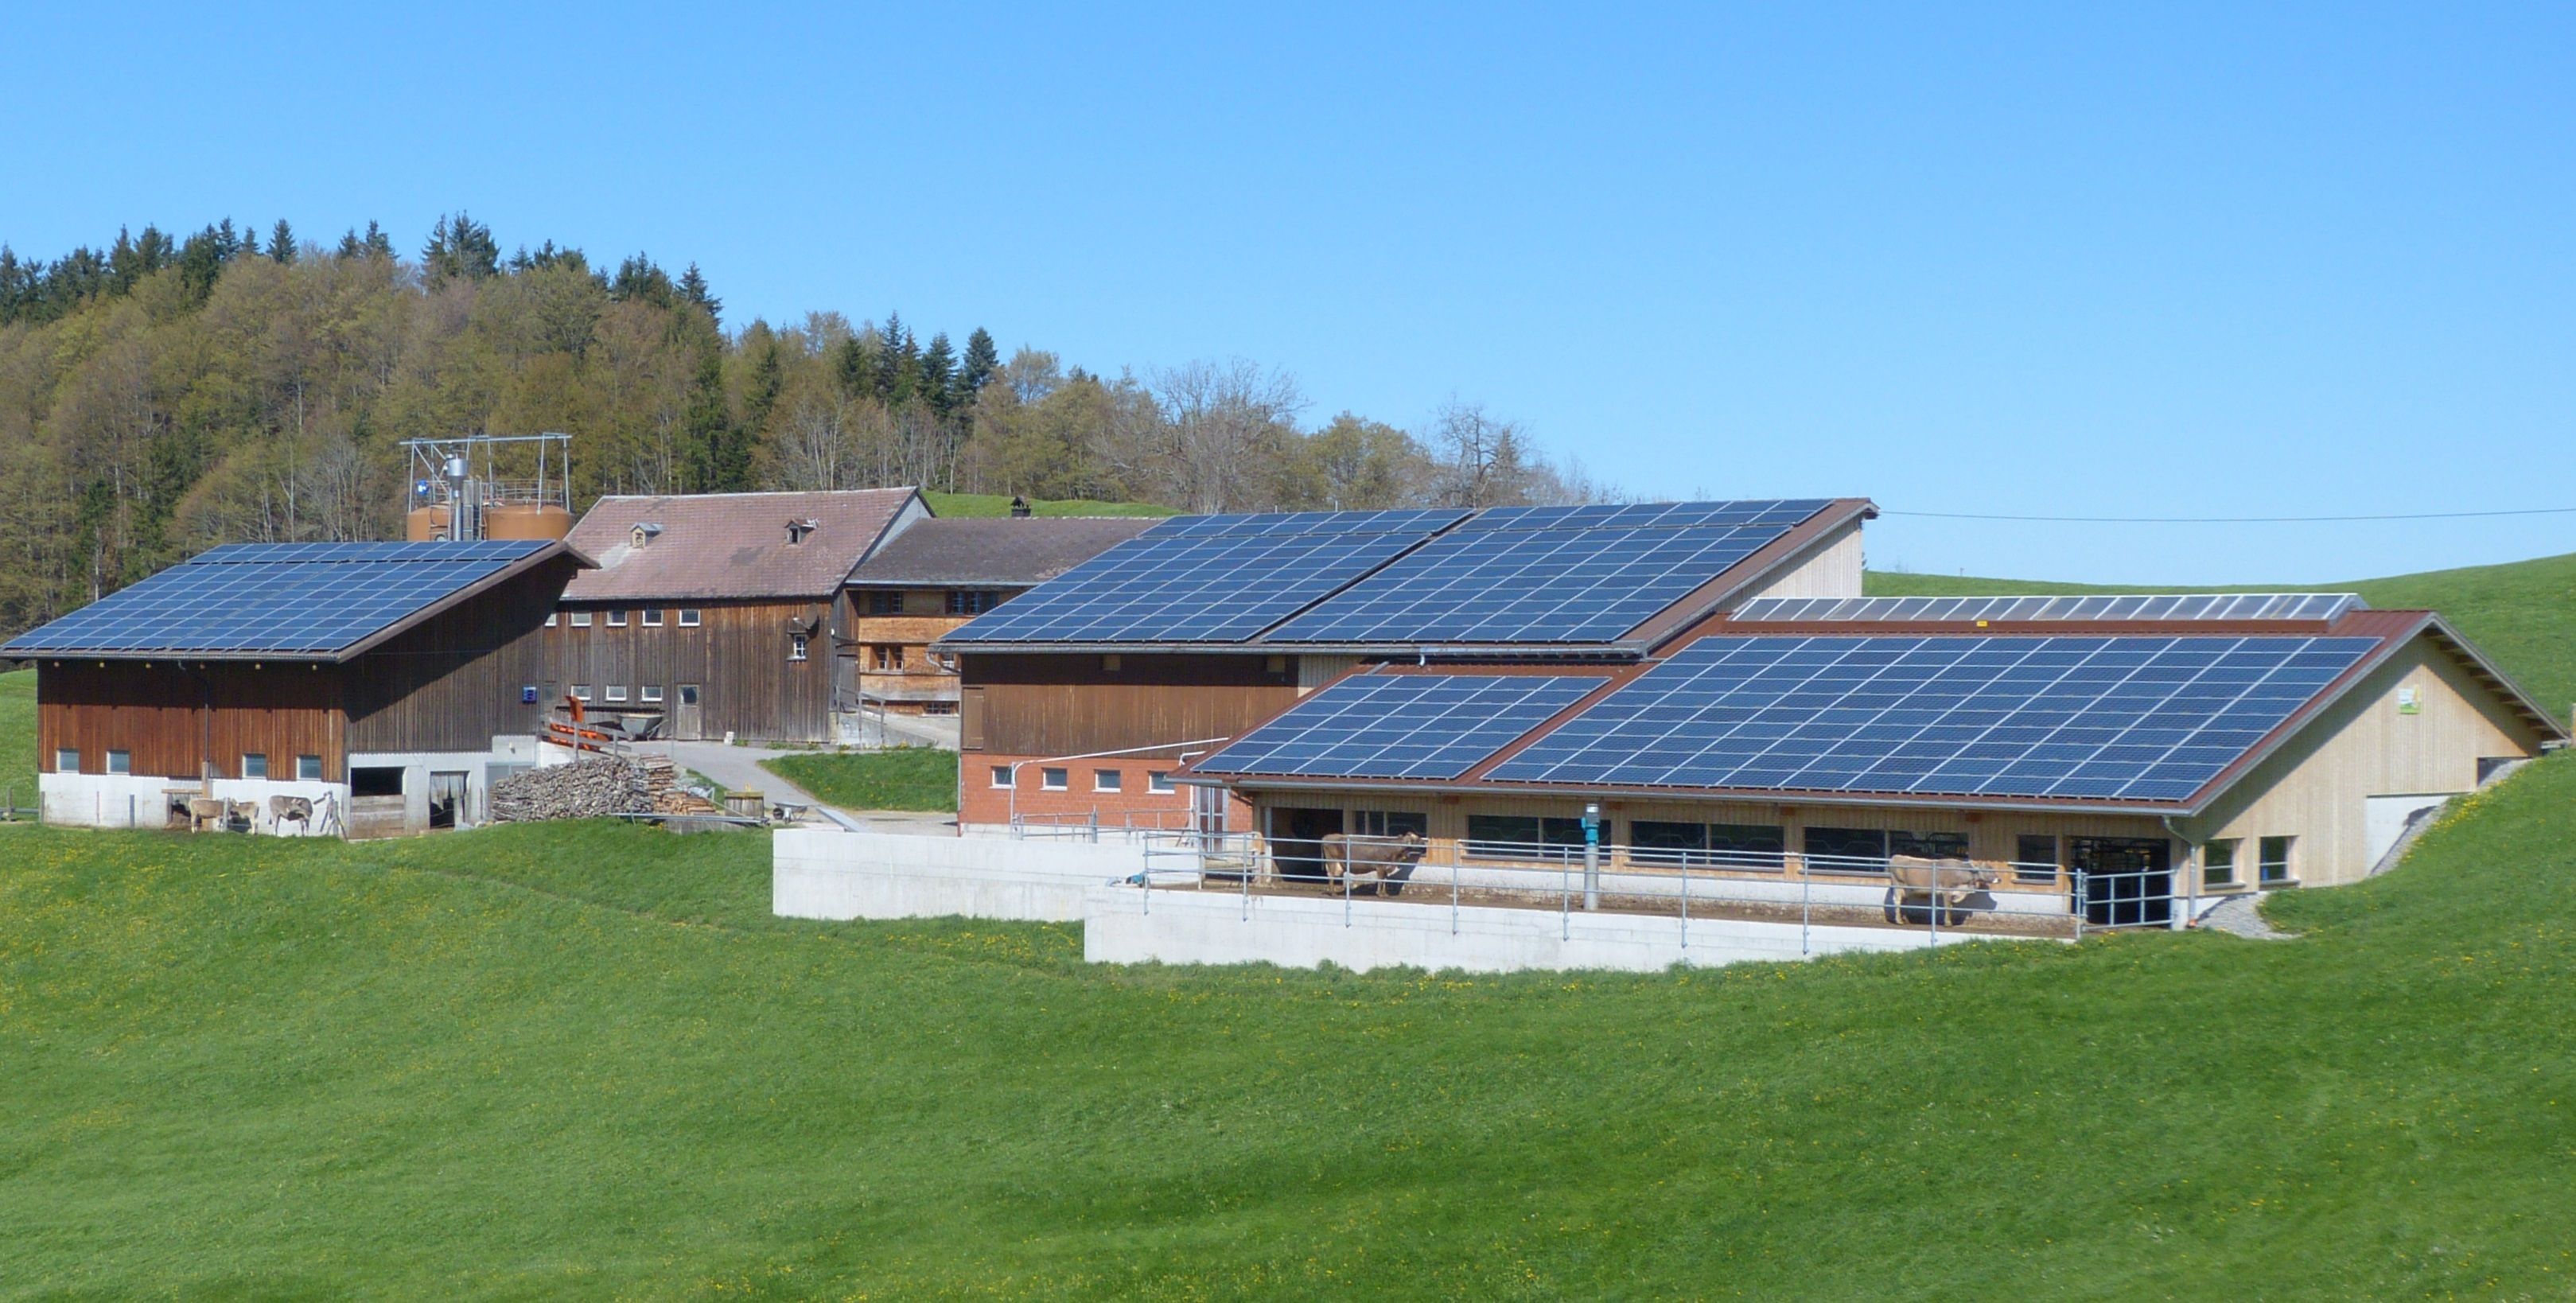 Commons photo challenge 2017 february barns voting for Solar homes